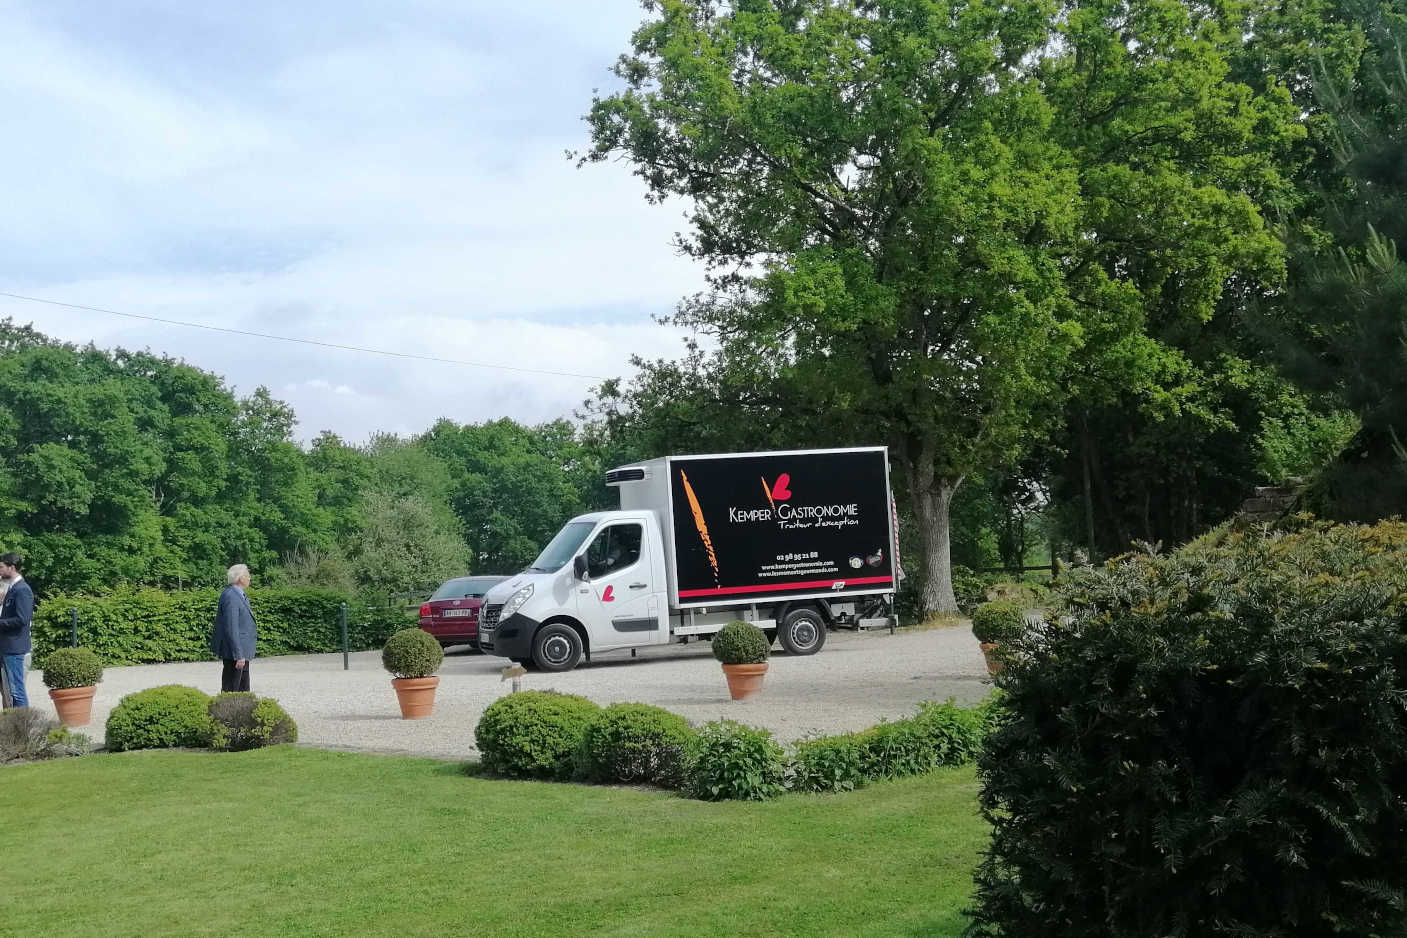 2019 05 18 MARE camion 1 - Mariages